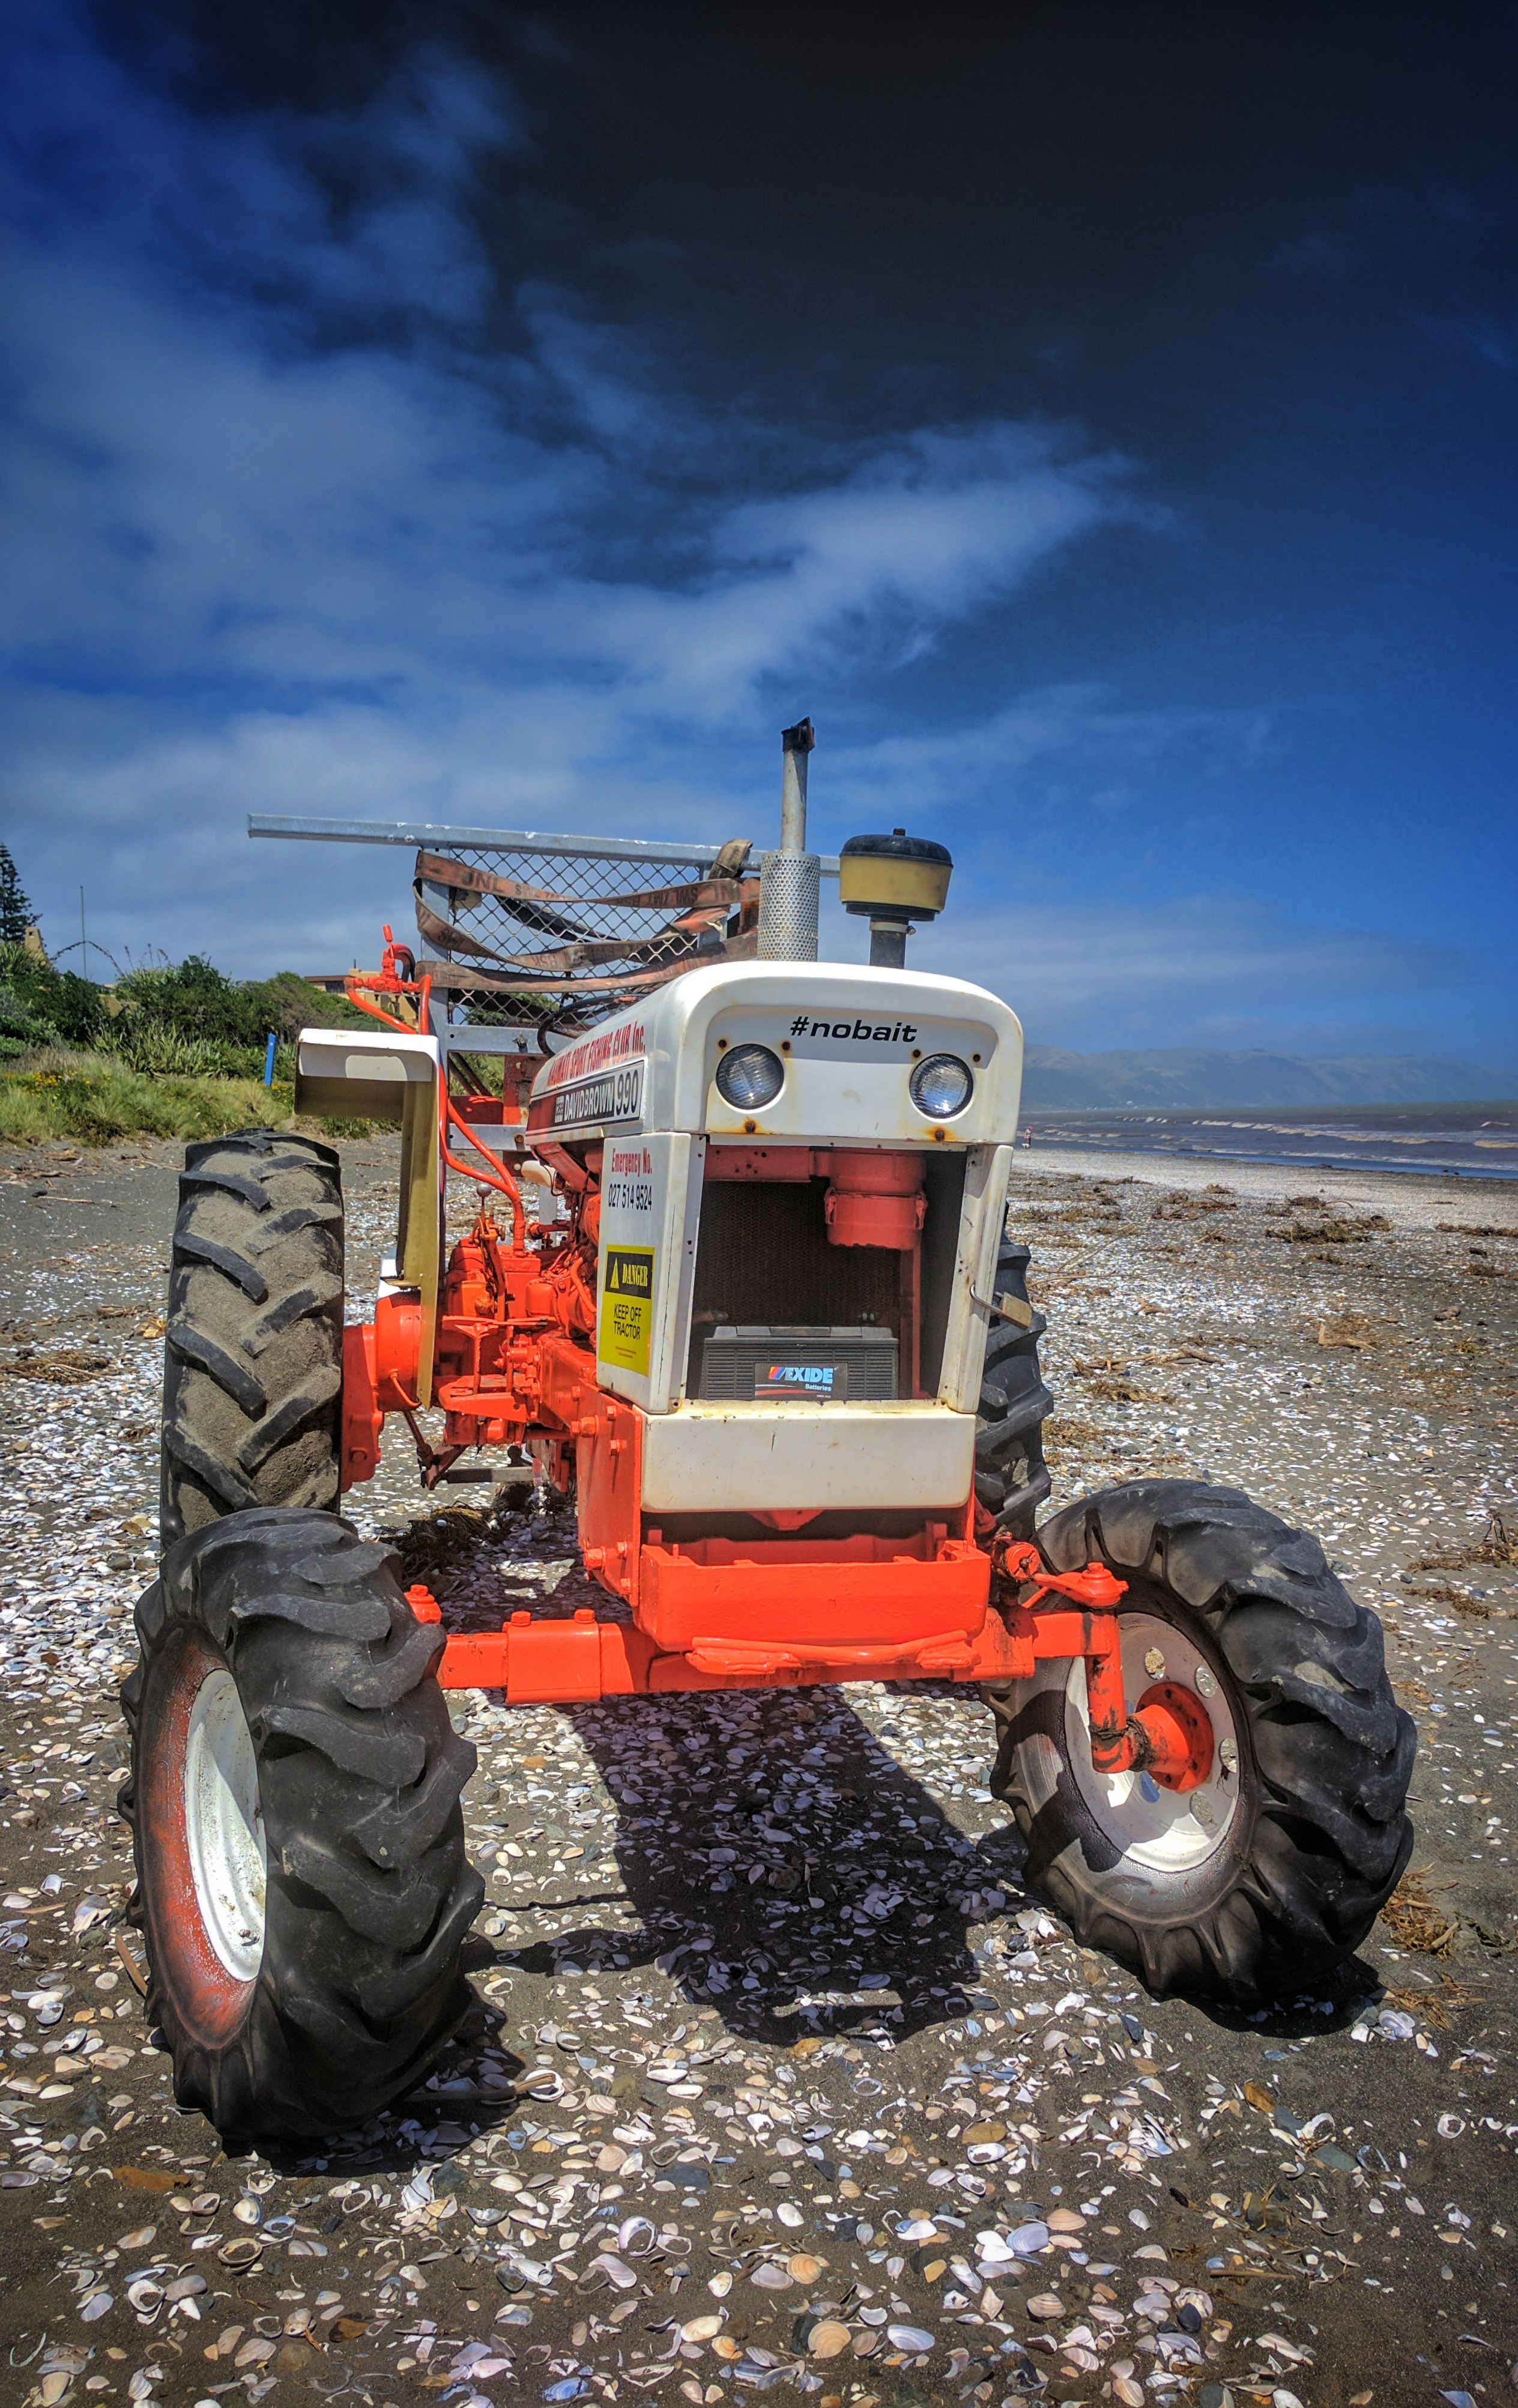 Tractor on a beach (edited)